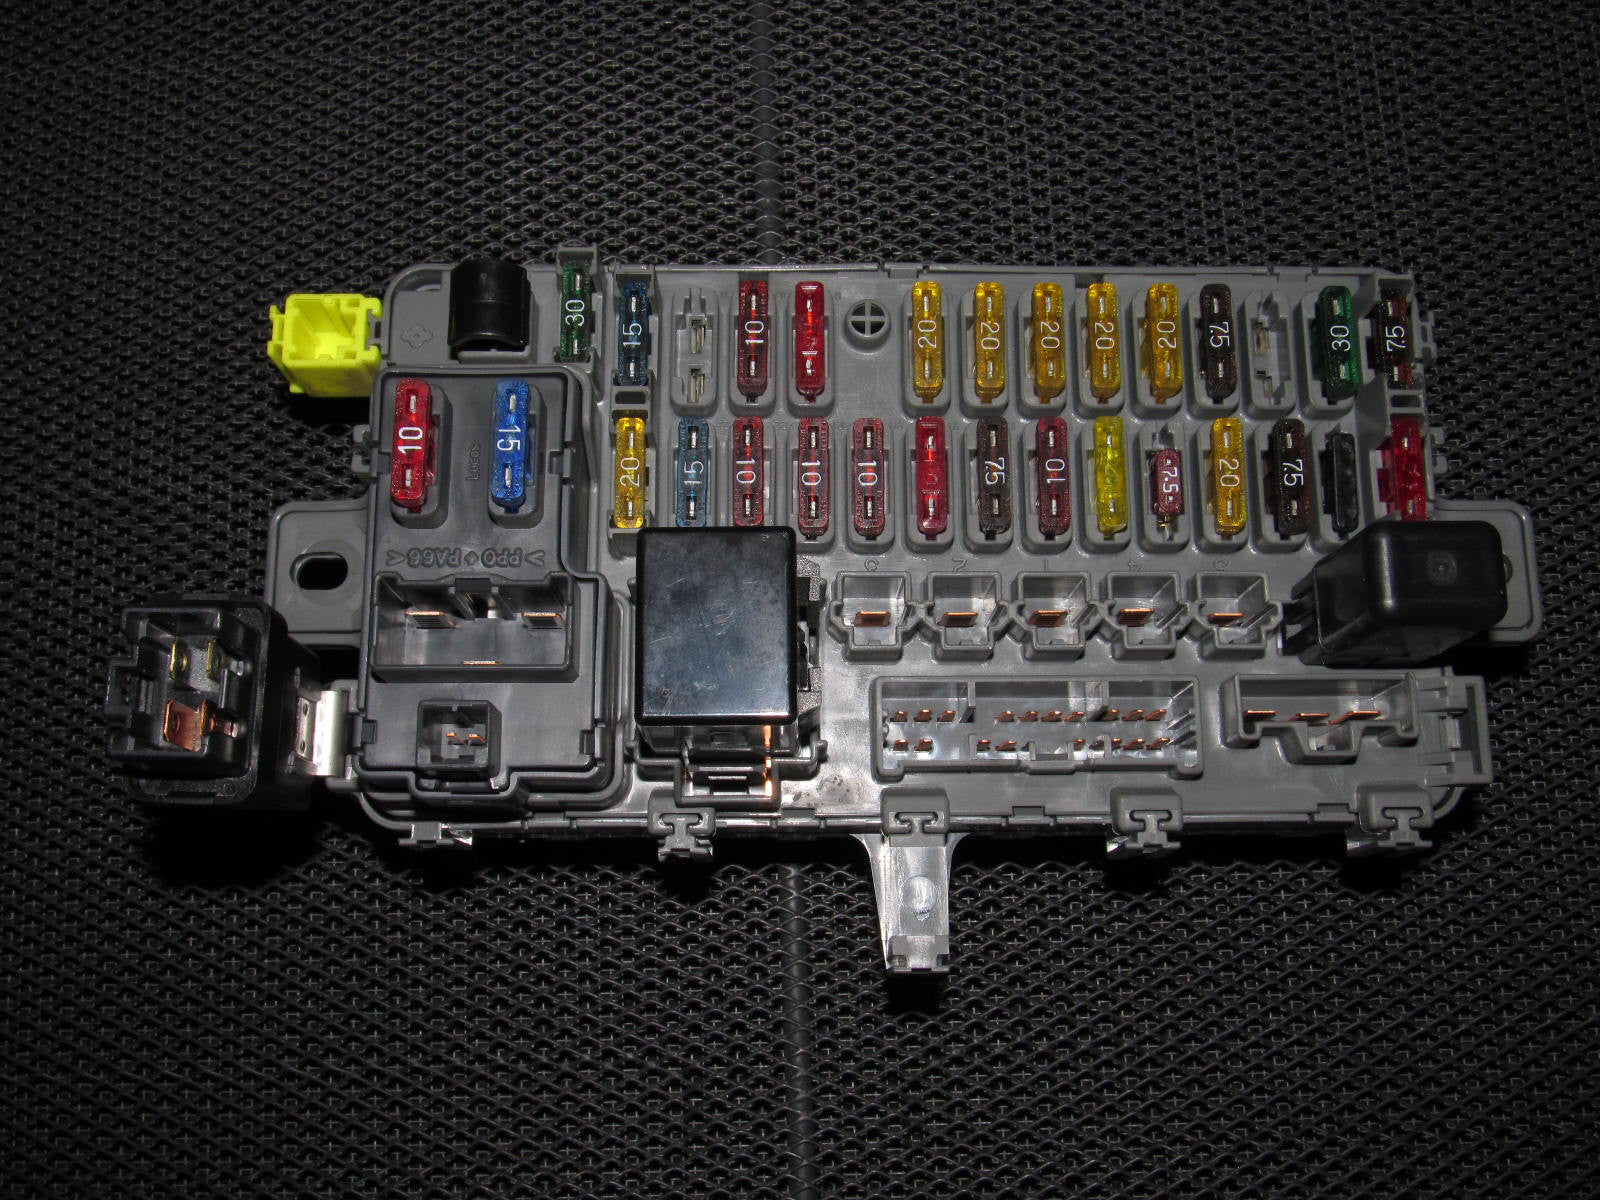 94 95 96 97 98 99 00 01 acura integra oem interior fuse 2016 honda fit fuse box diagrams